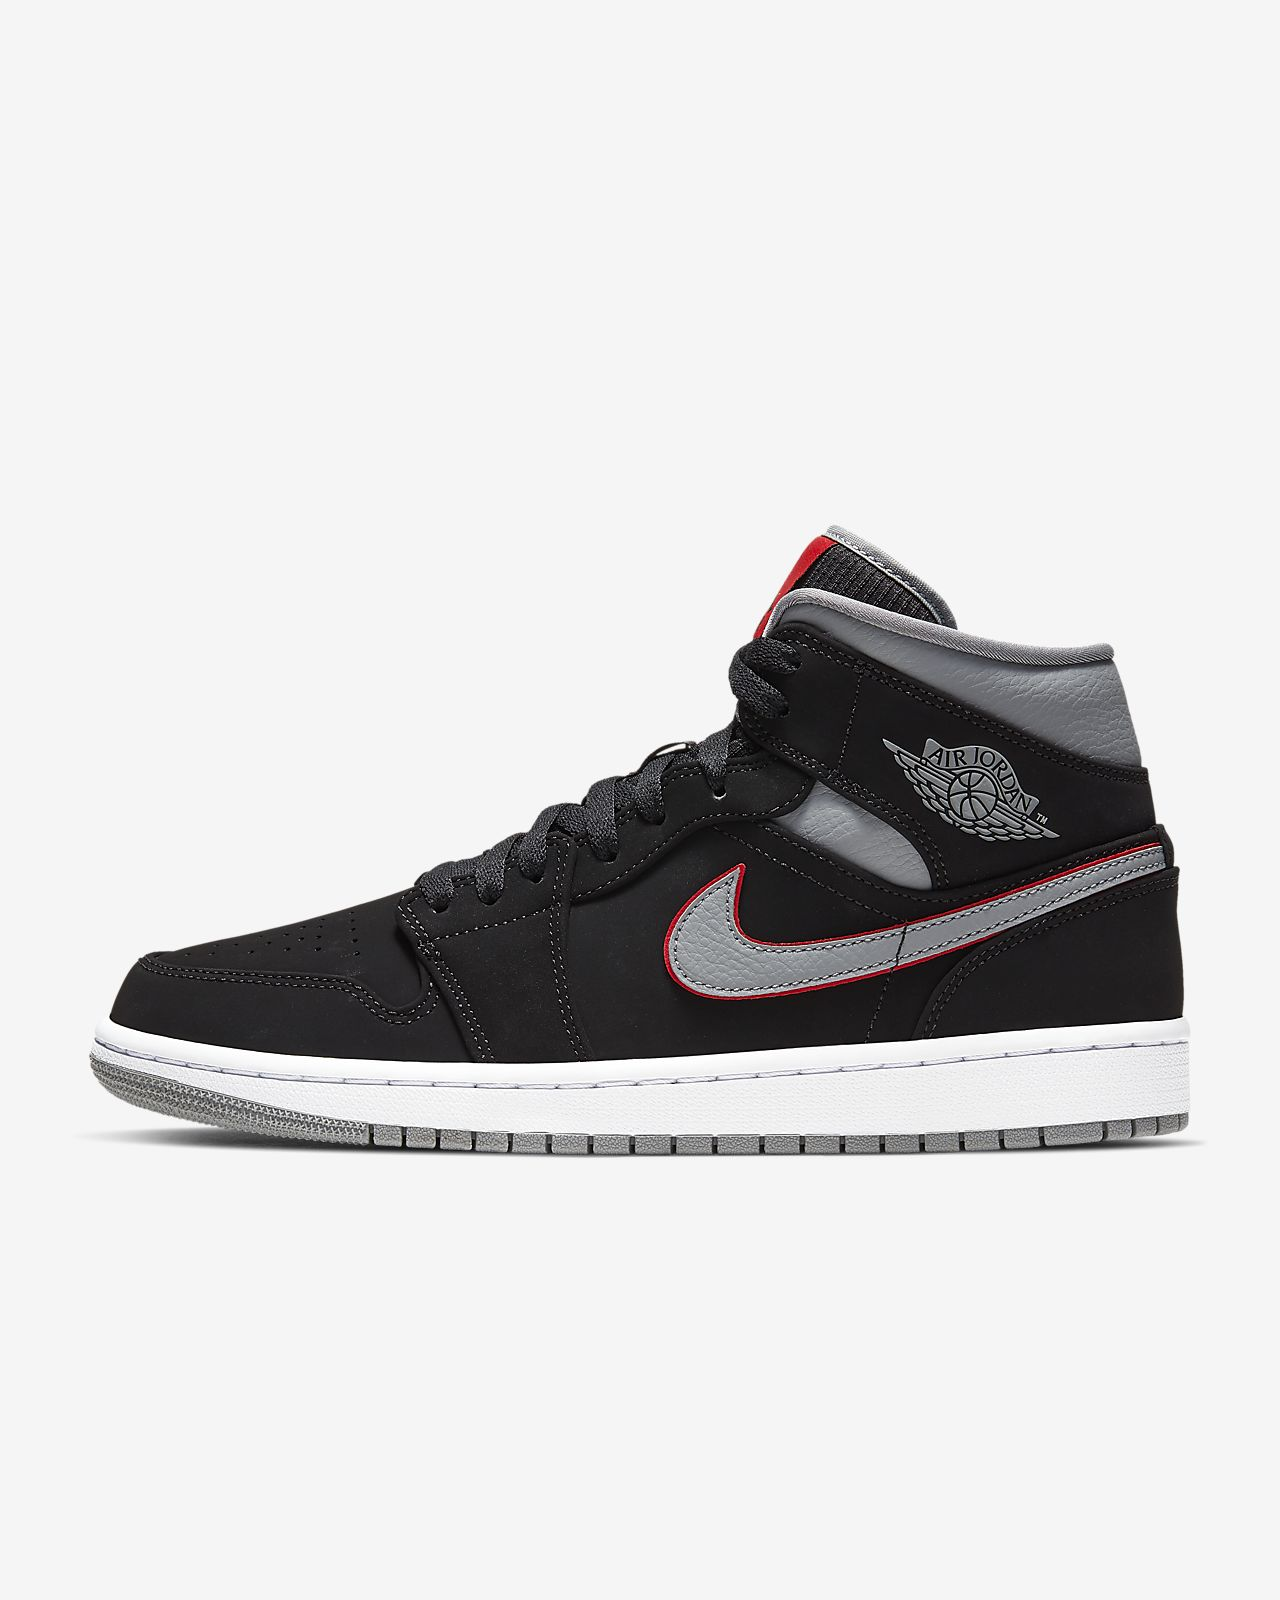 72329233dcfaef Air Jordan 1 Mid Men s Shoe. Nike.com AU